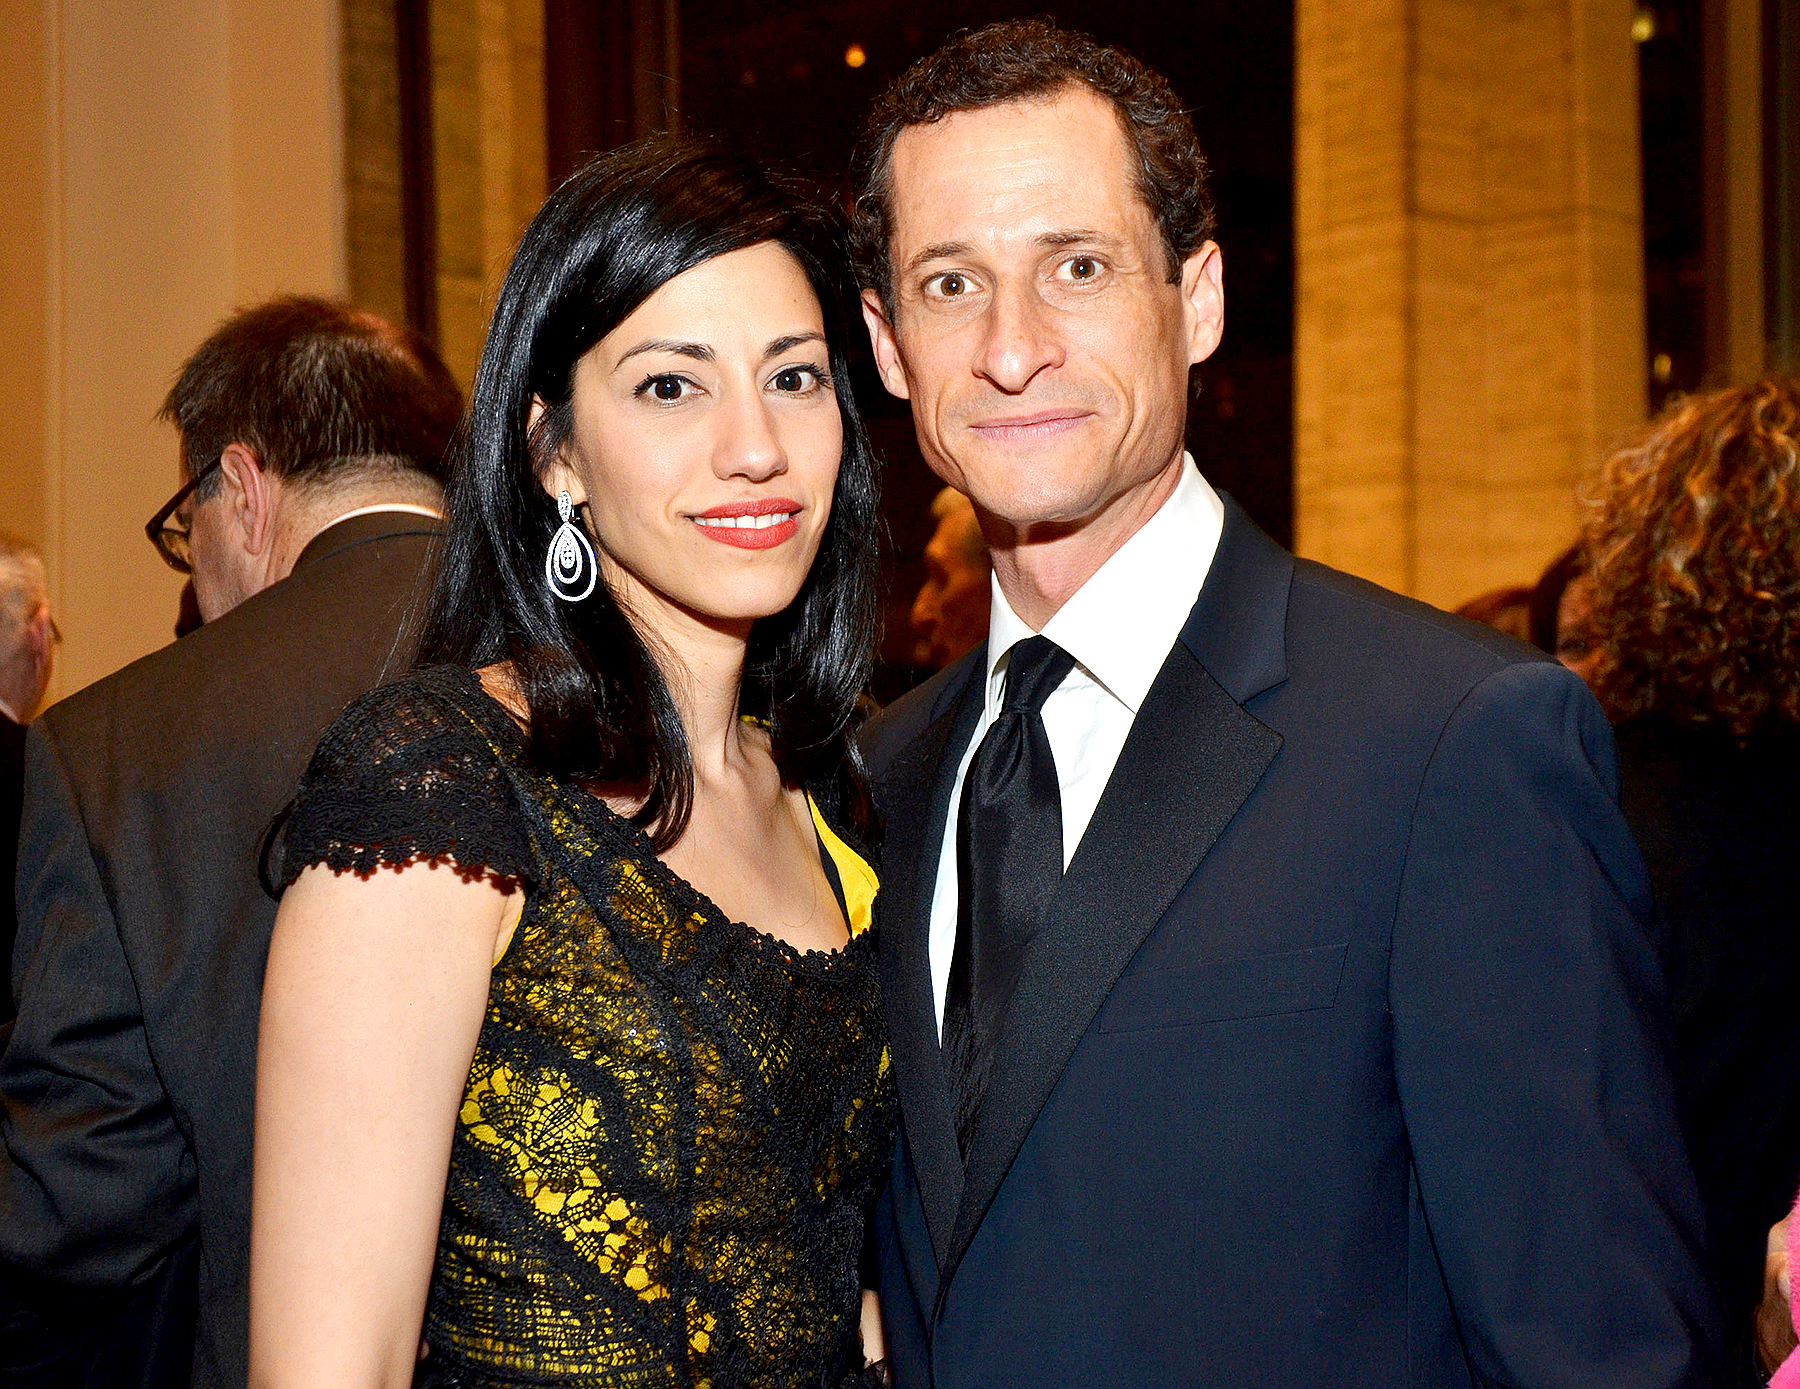 Anthony Weiner, Huma Abedin to settle divorce privately